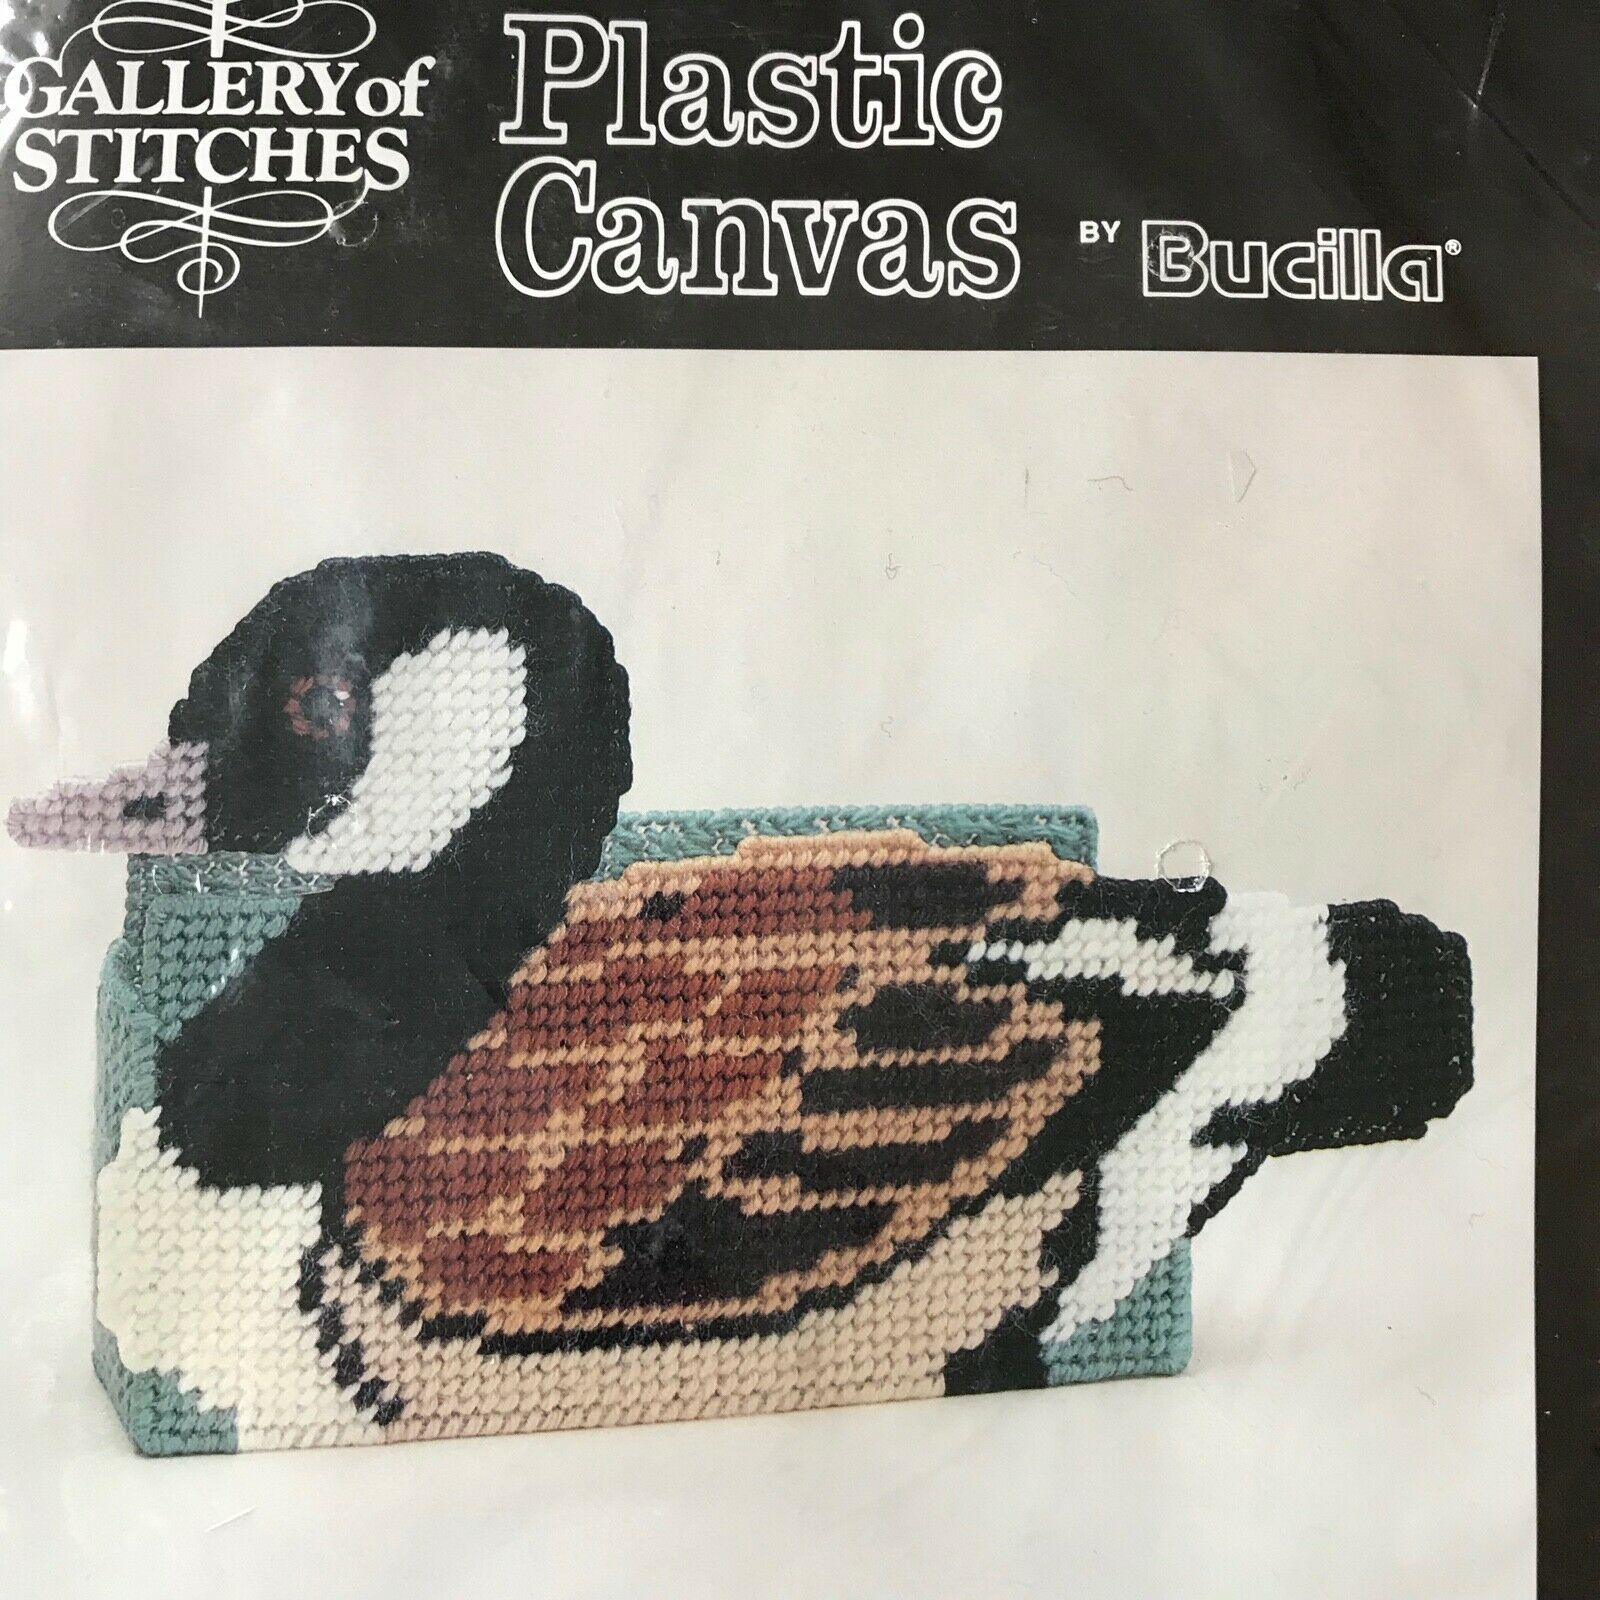 Primary image for Bucilla Gallery of Stitches Mallard Duck Doorstop Plastic Canvas 6933